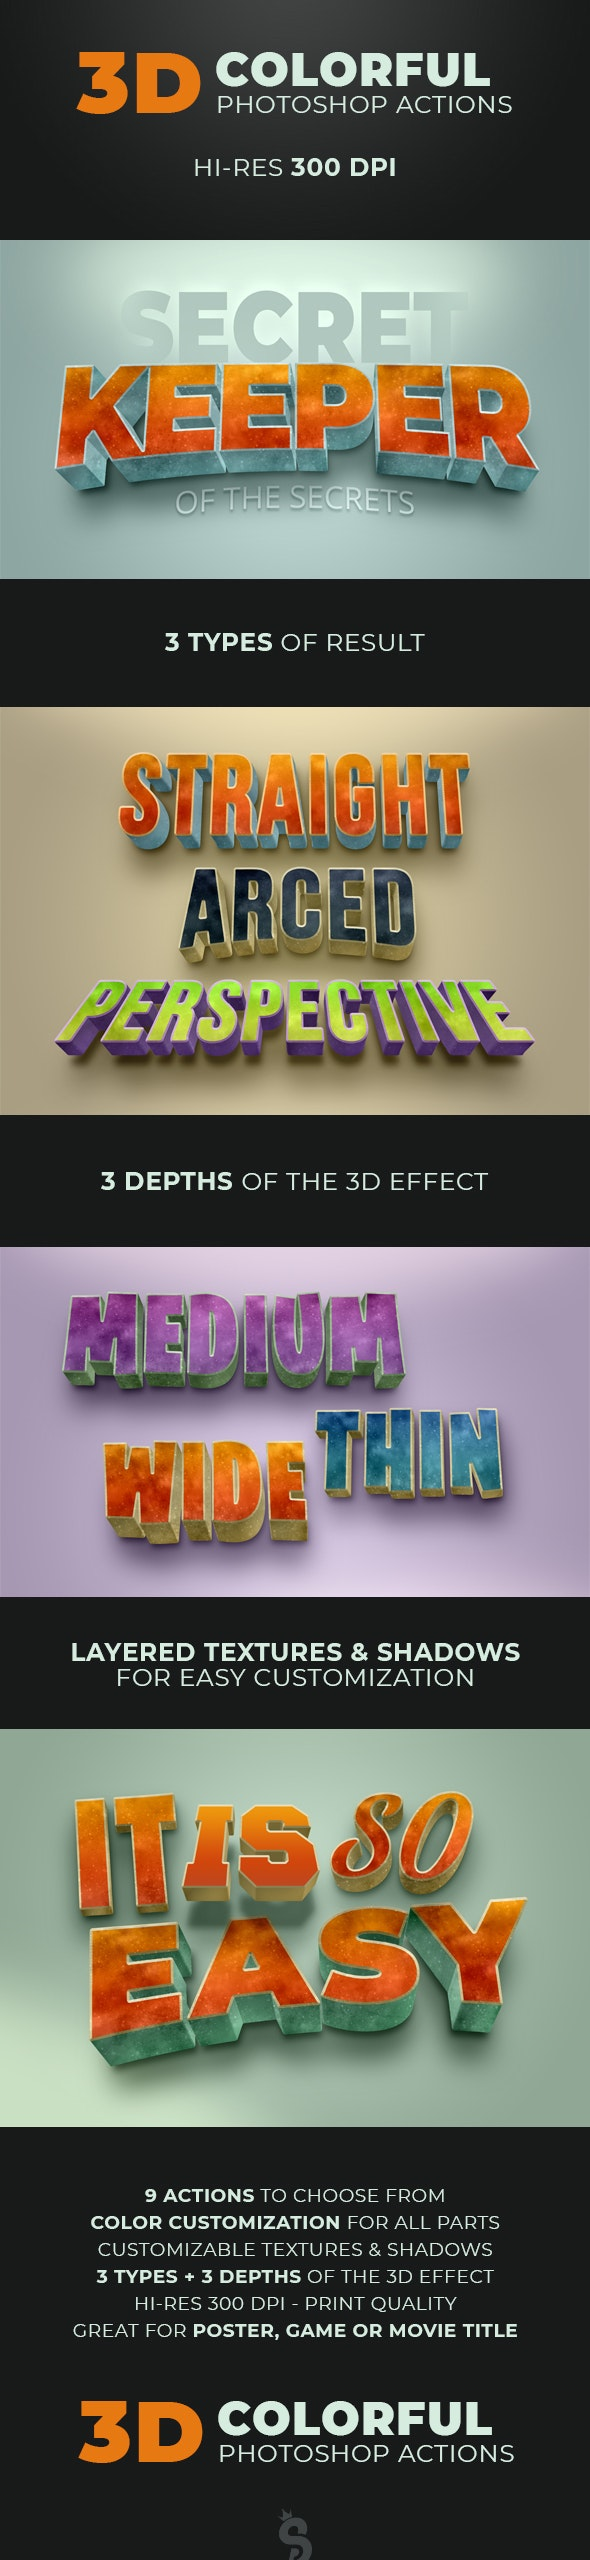 3D Colorful Grunge Actions - Text Effects Actions